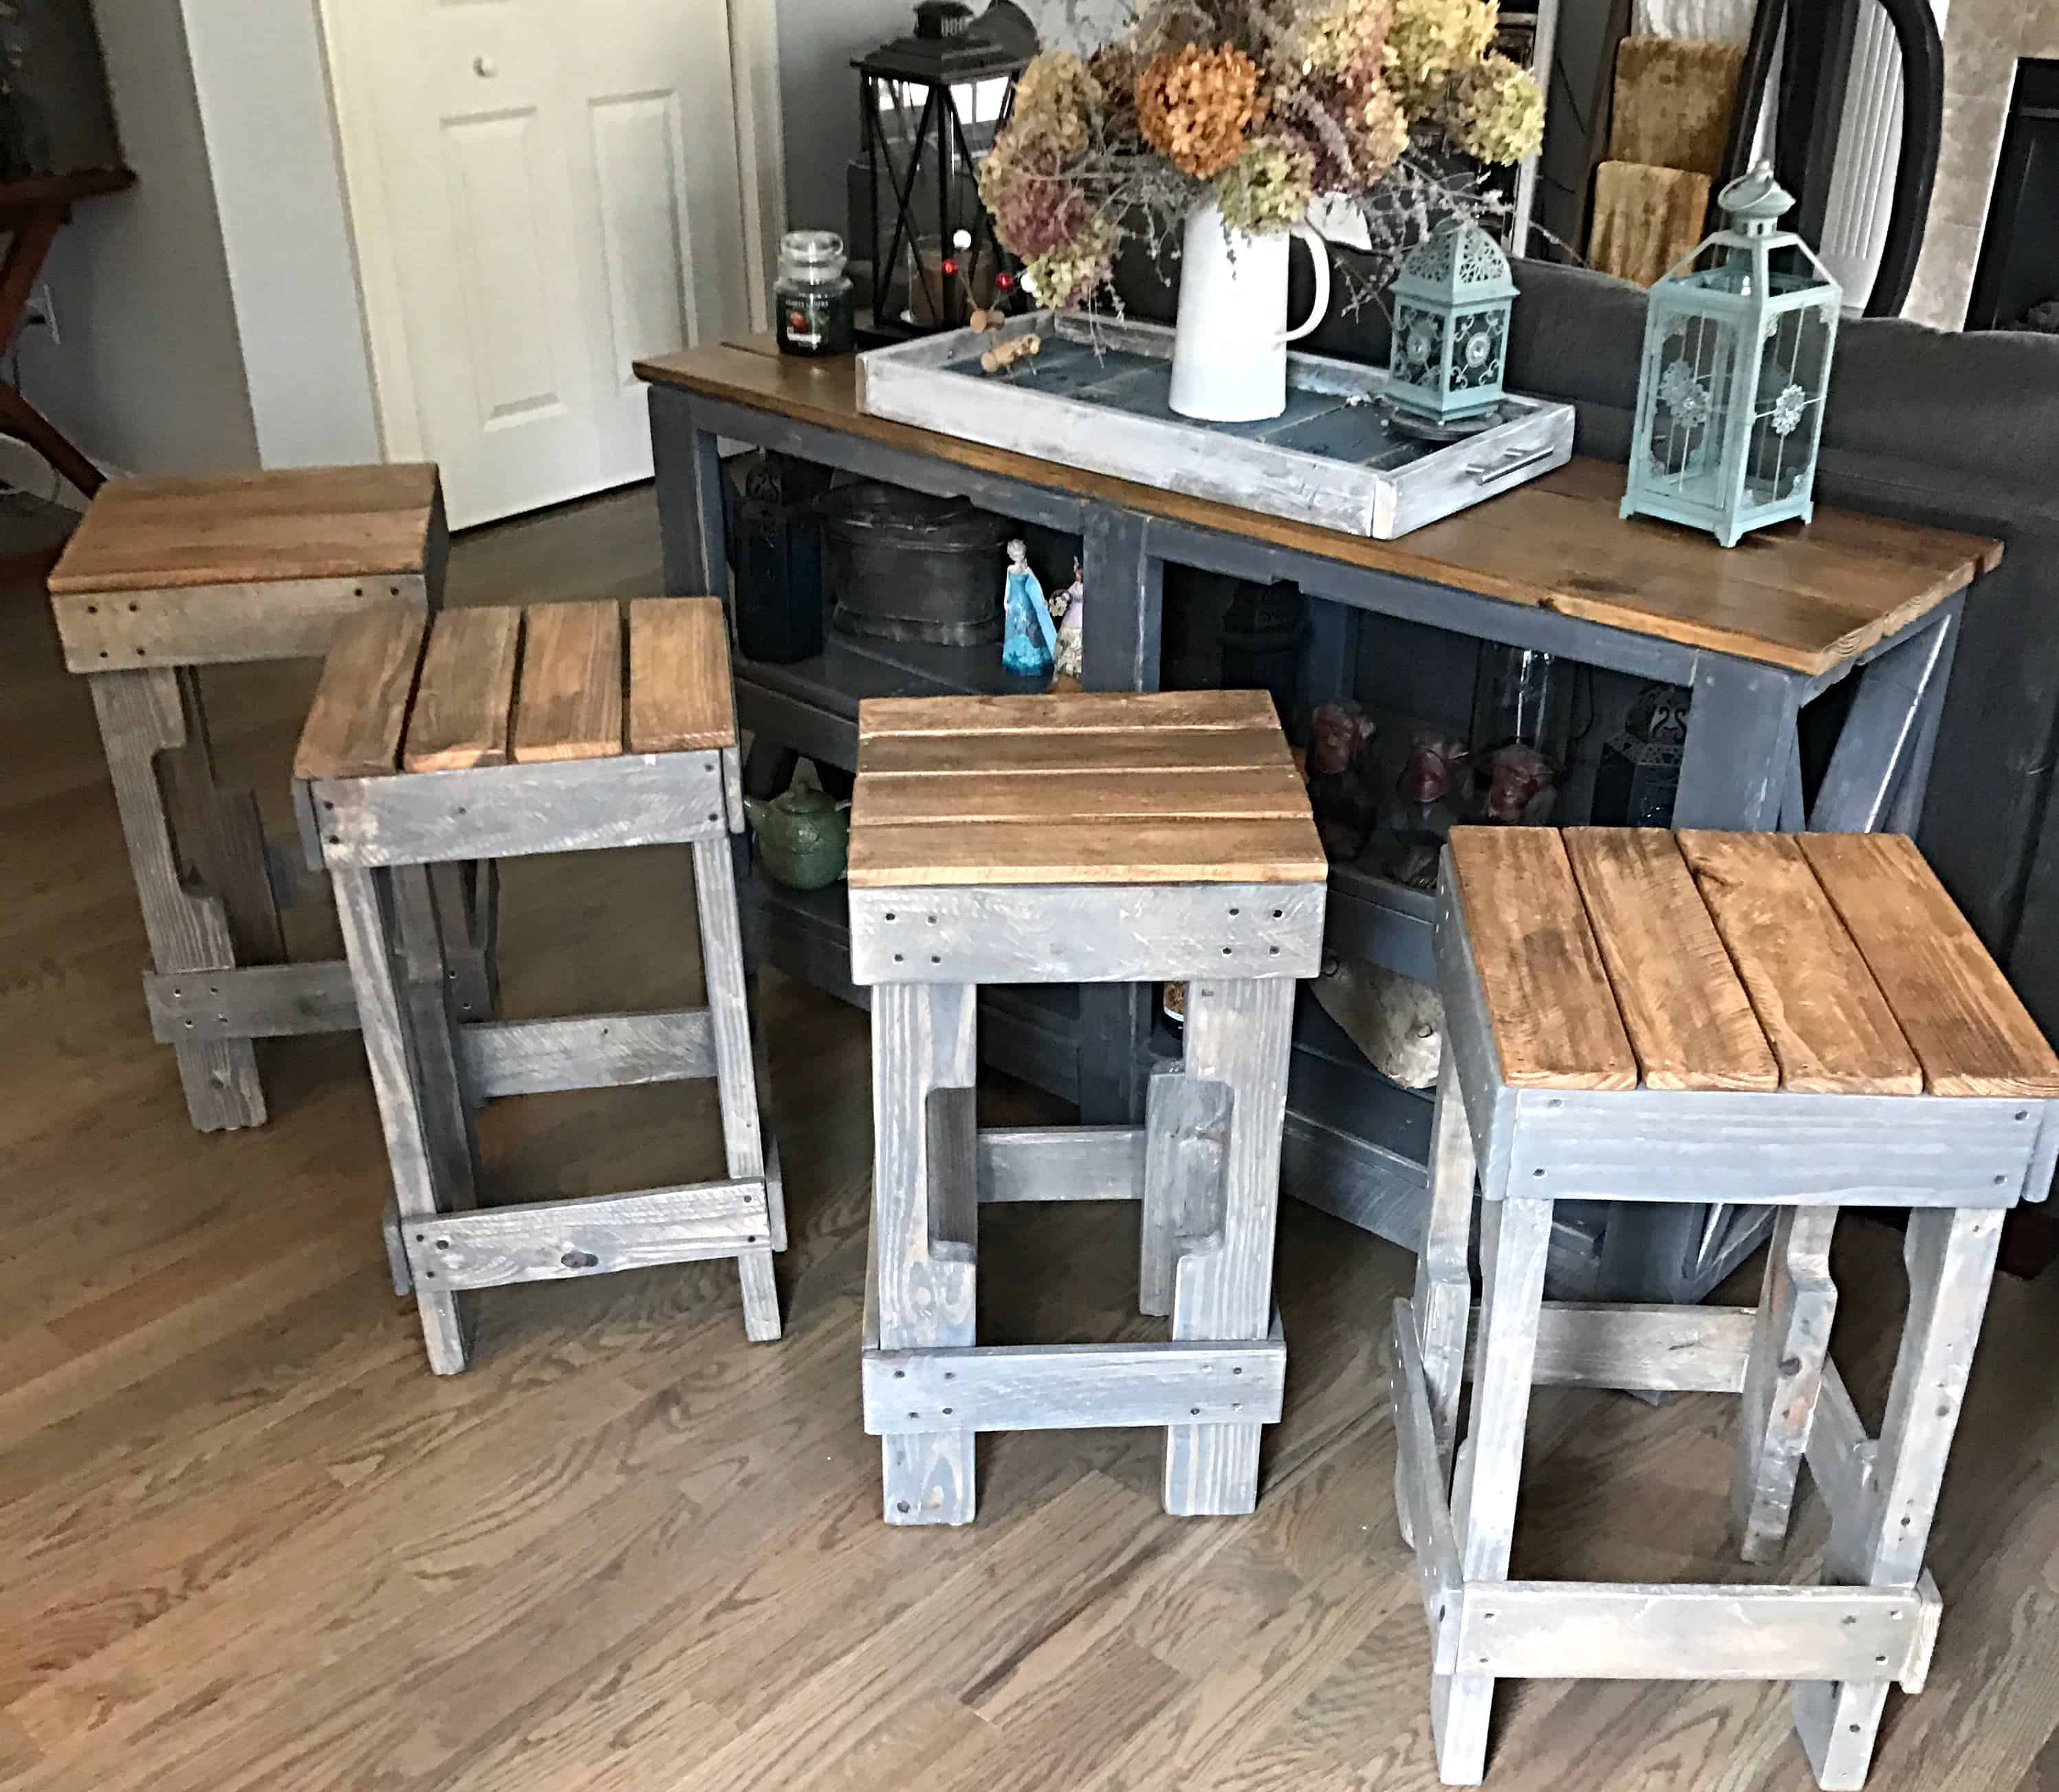 Pallet Stringer Bar Stools Look Pretty Cool! • 1001 Pallets